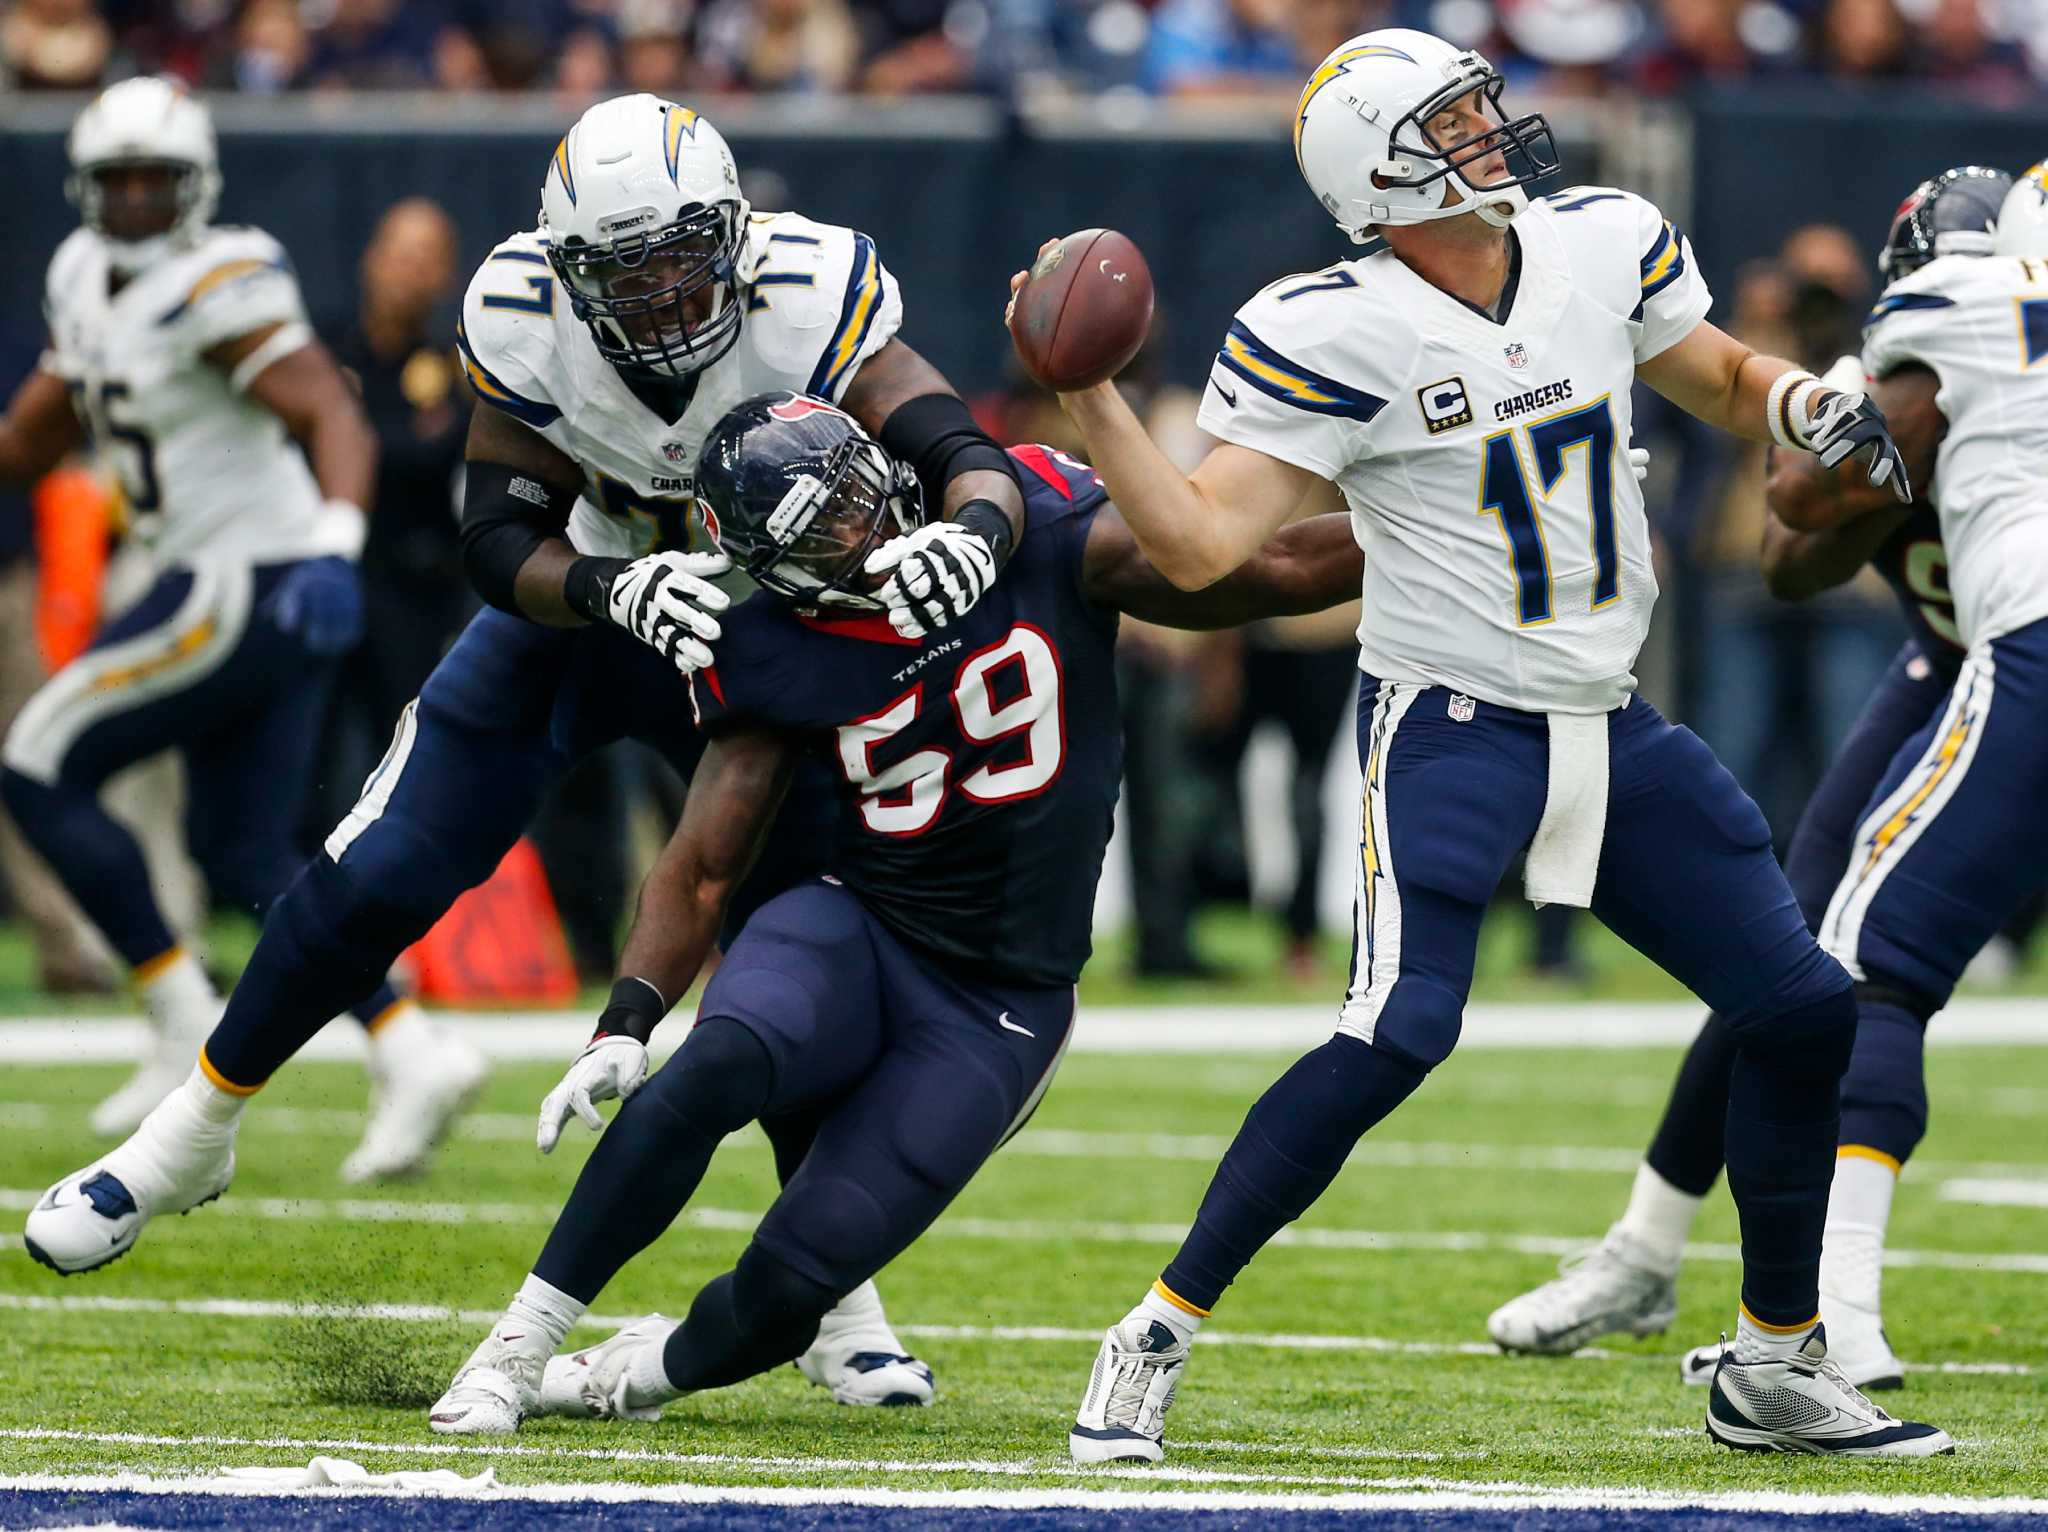 Smith: Texans can make early statement with win at Chargers